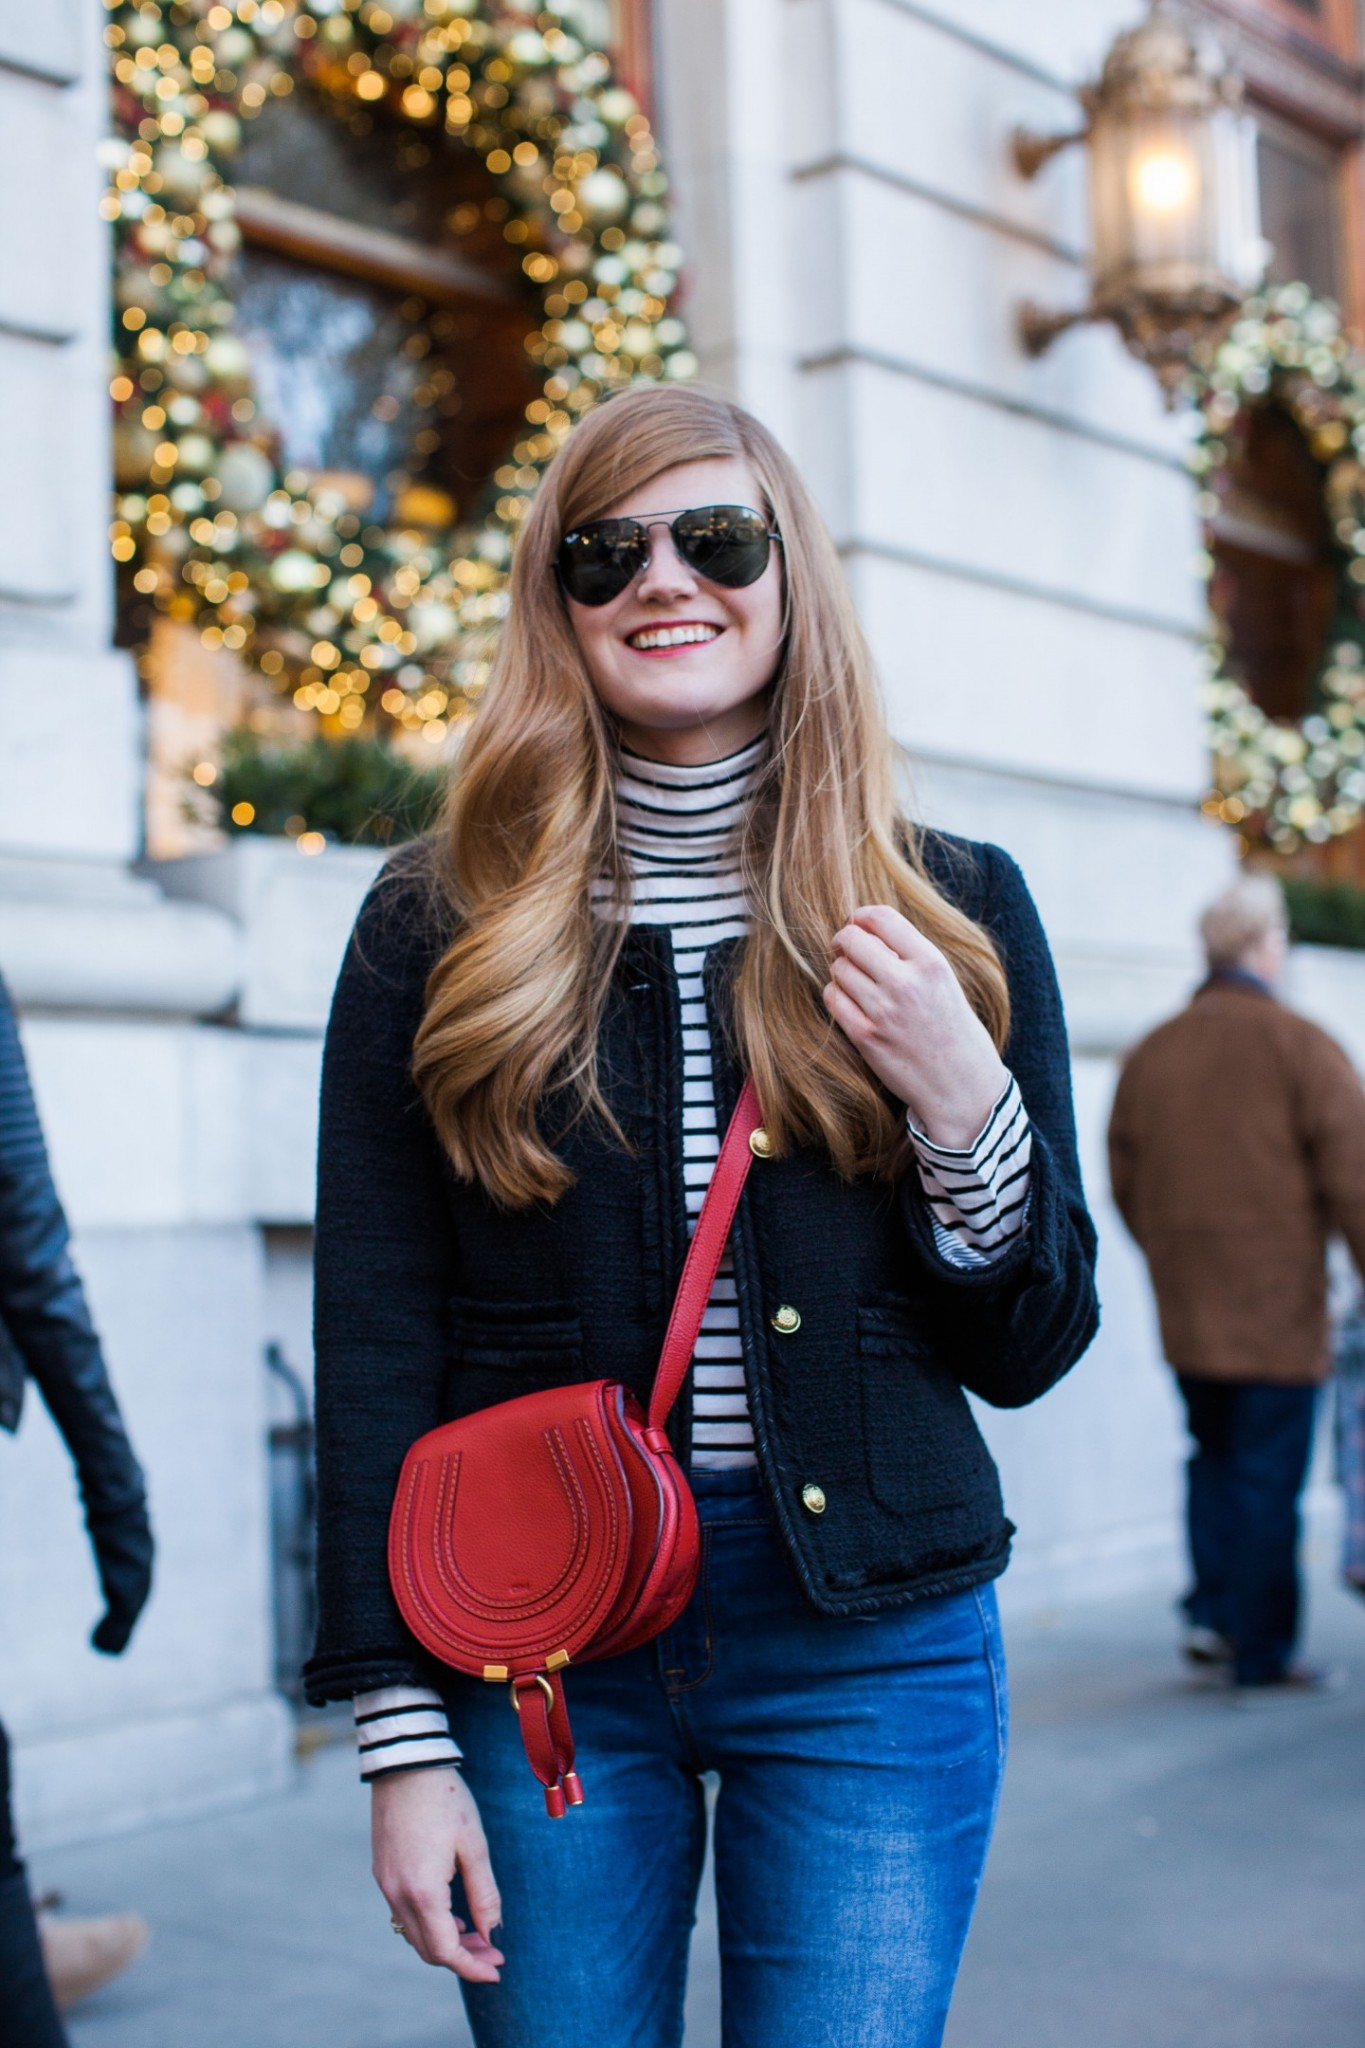 Top London fashion blogger, Mollie Moore, styles a festive look whilst spending Christmas at the Plaza in New York City: picture of a woman wearing Aviator sunglasses, Chloe crossover bag, skinny jeans, striped sweater, a black cropped jacket and plaid flats